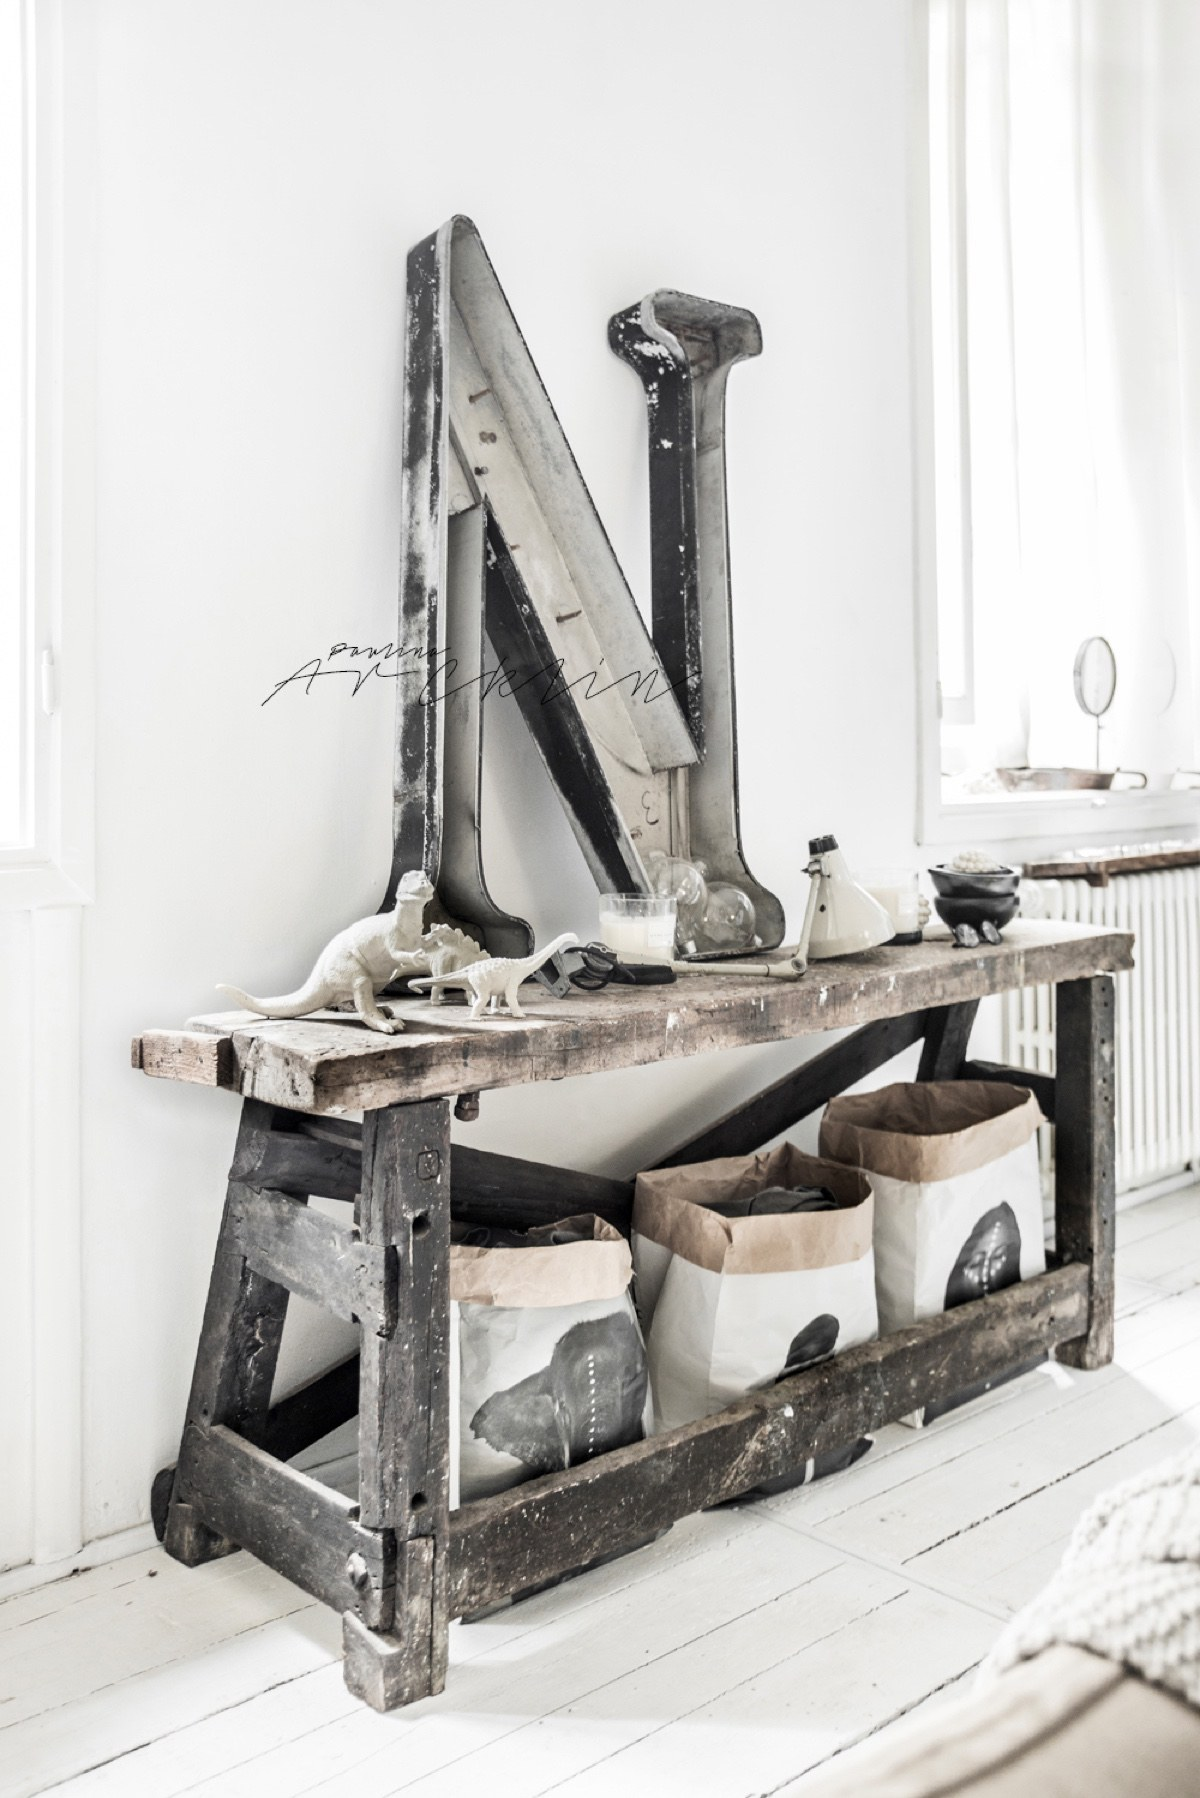 Worn Workbench As Home Decor - Cottage chic meets industrial decor in this amazing milan apartment